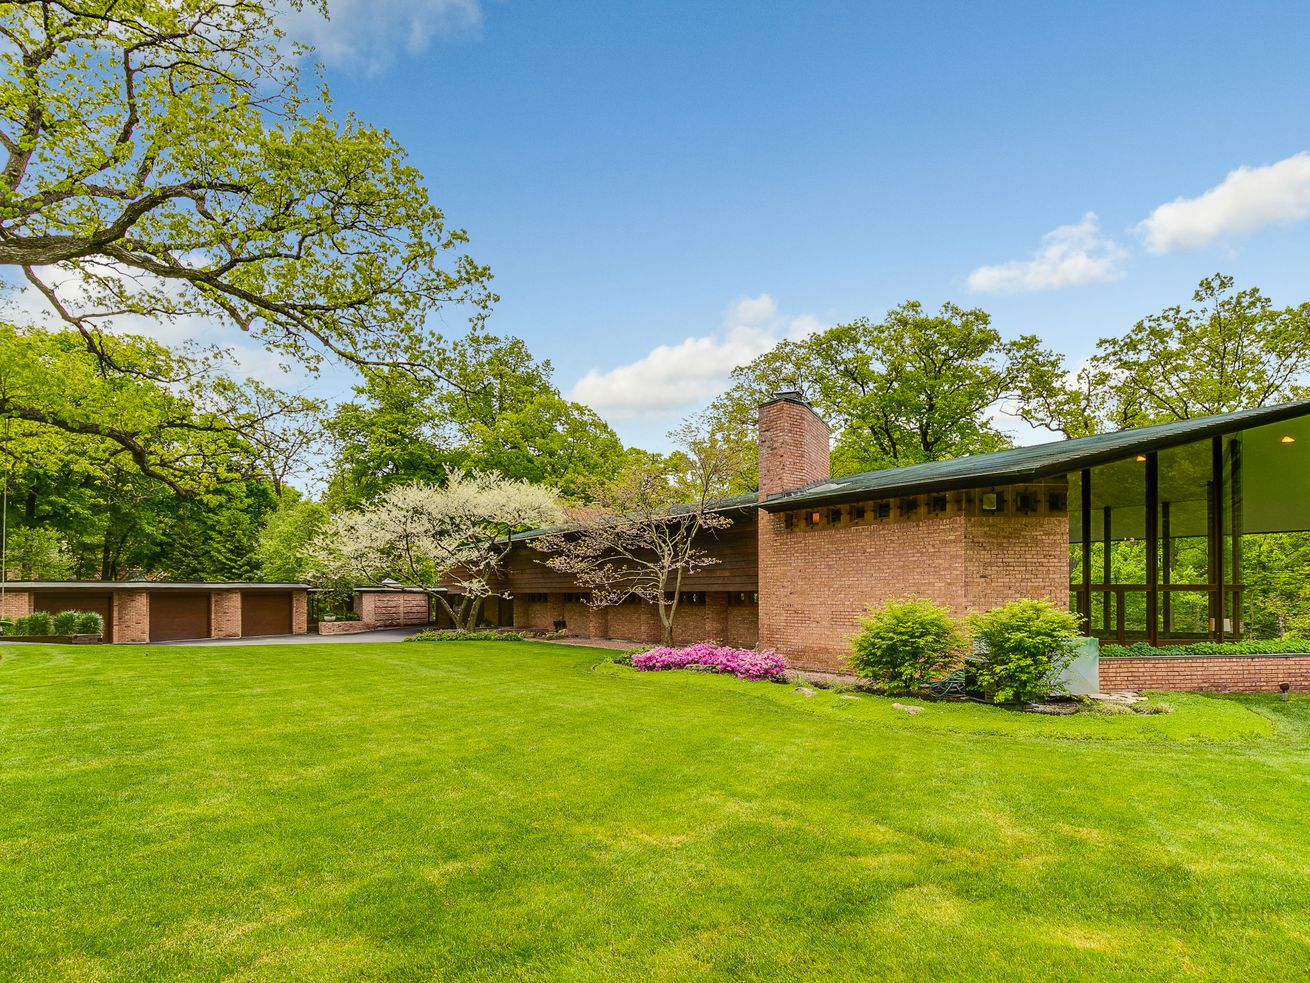 An exterior view of a Frank Lloyd Wright Usonian house designed for Charles F. Glore. There is a large grass lawn and red brick building that slopes into a double height glass living room.